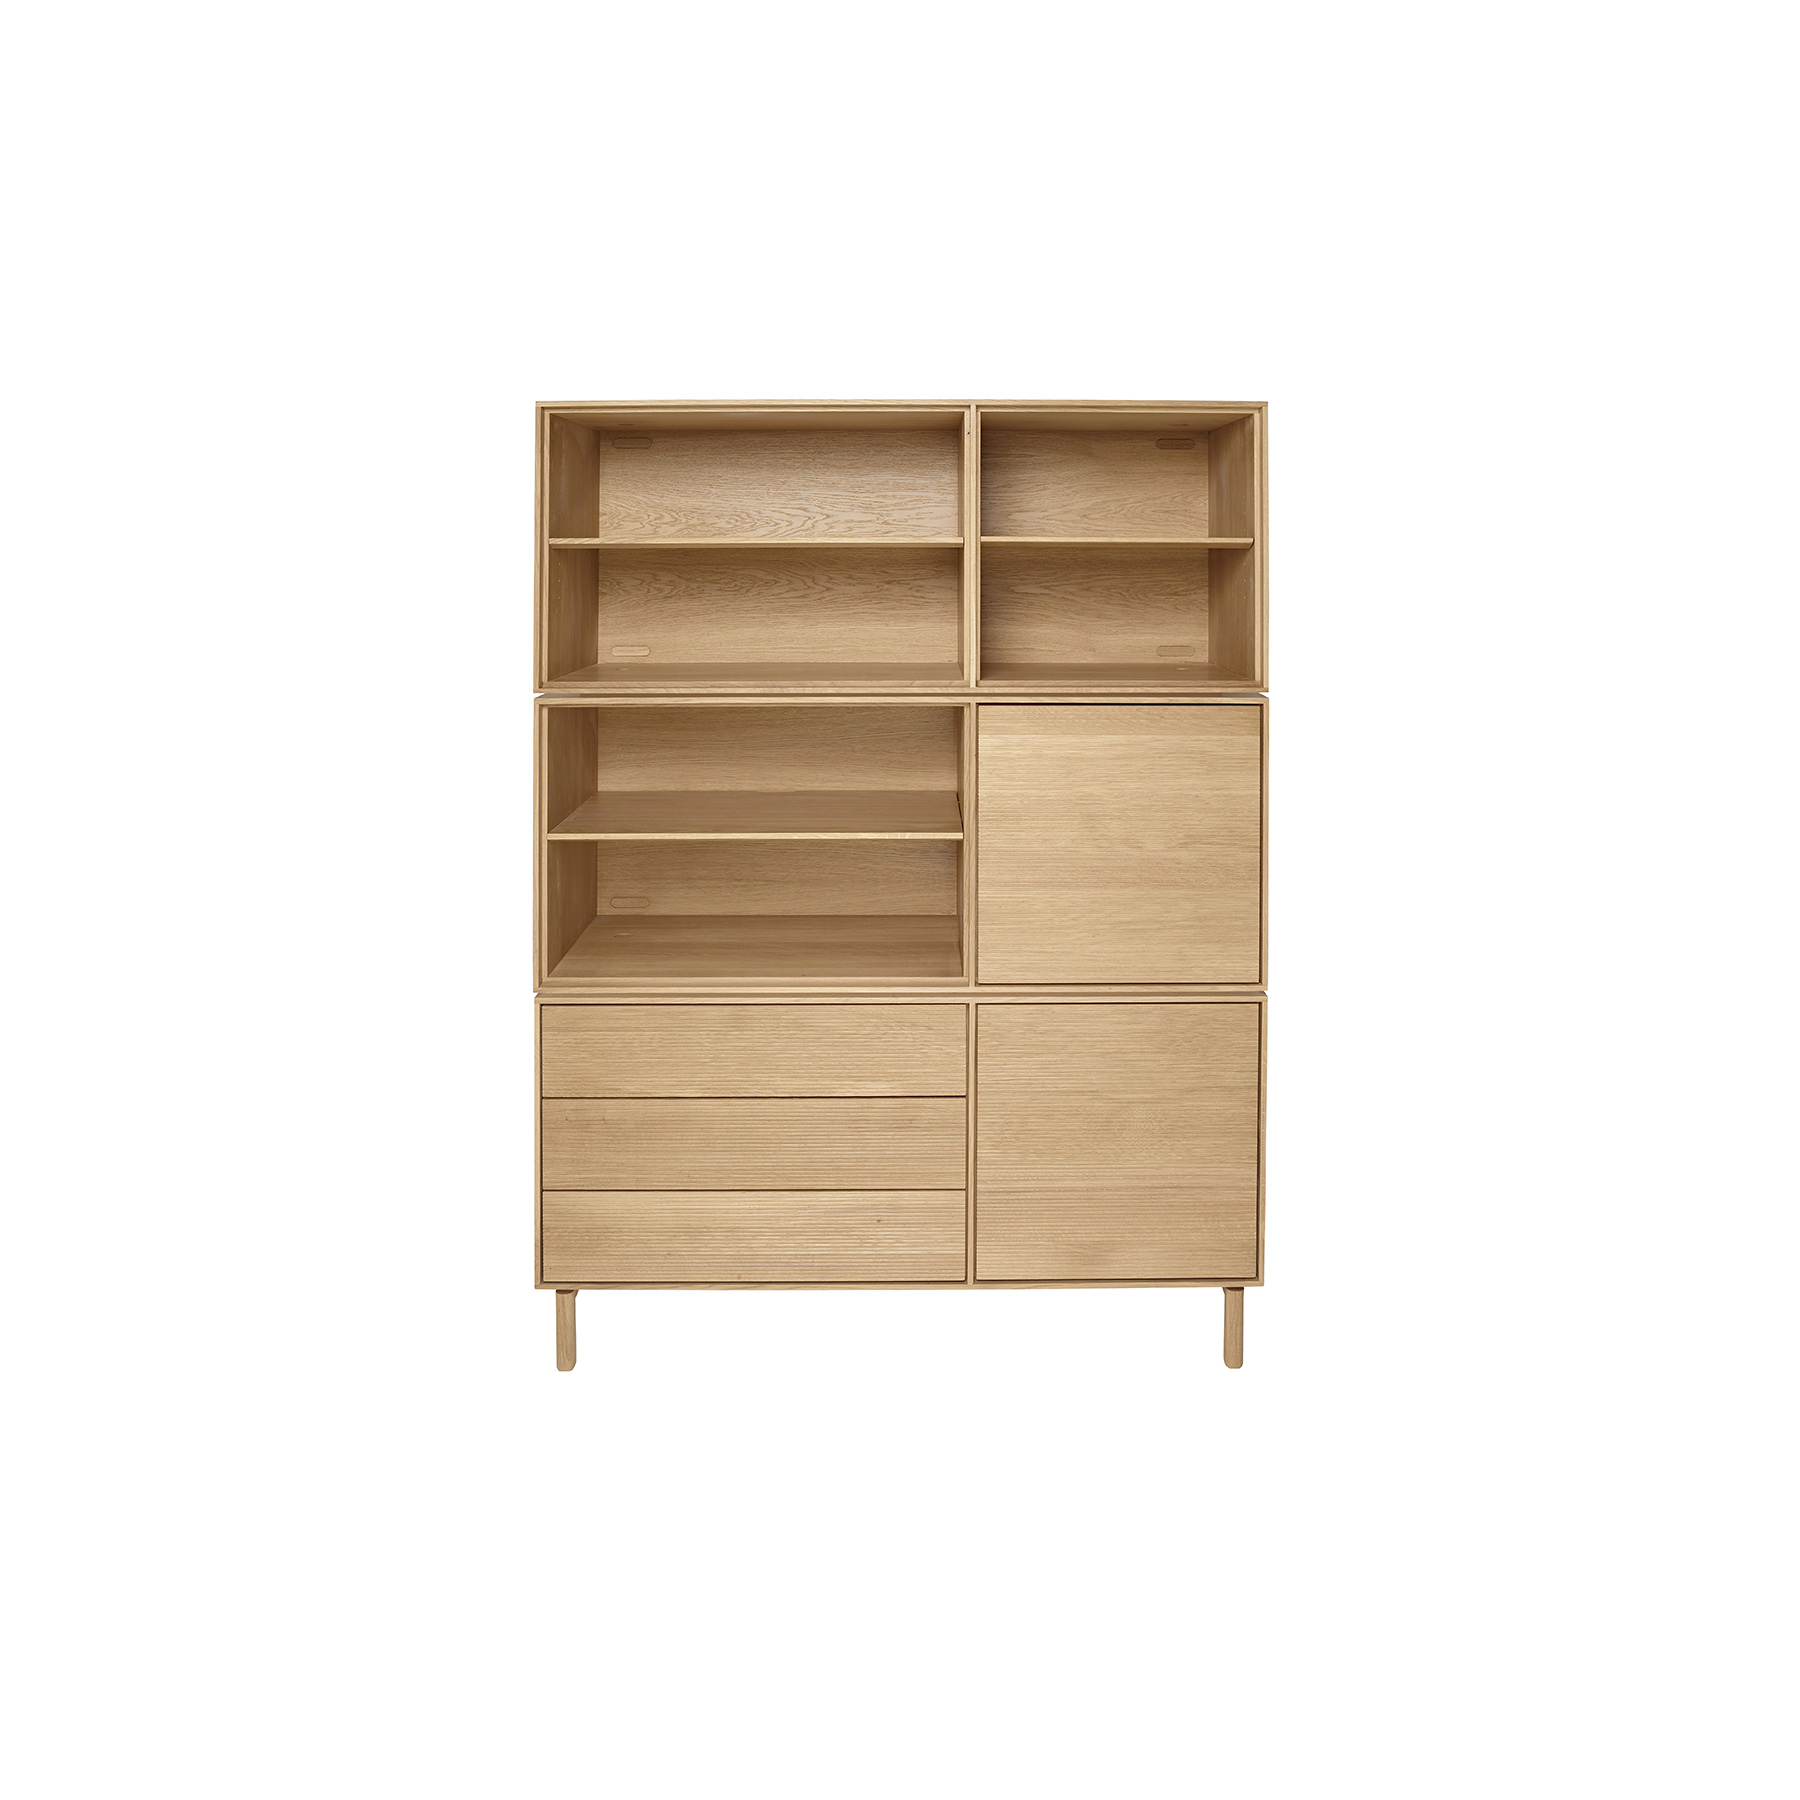 Modulo Open Cabinet - <p>The brief for Modulo was to create a simple, flexible storage system. Modulo is built around a single basic solid oak cabinet carcass which can be specified with either doors and drawers, doors and shelves, drawers and shelves or just shelves. Modulo combines traditional cabinet construction with the modern desire for choice and personalisation.  Each option is available oriented left-handed or right-handed and can be used individually or stacked and combined to offer numerous storage solutions. Wood finishes and colour samples are shown for guidance only as screen colours may vary. We would recommend ordering a sample in your chosen finish. However, wood is a natural material and varies in colour, grain and structure.<br /> Doors and Drawers available in Natural (DM) finish only. Cabinets are available in Natural (DM), Darkened (DA) or Black (BK) finish.</p>  | Matter of Stuff